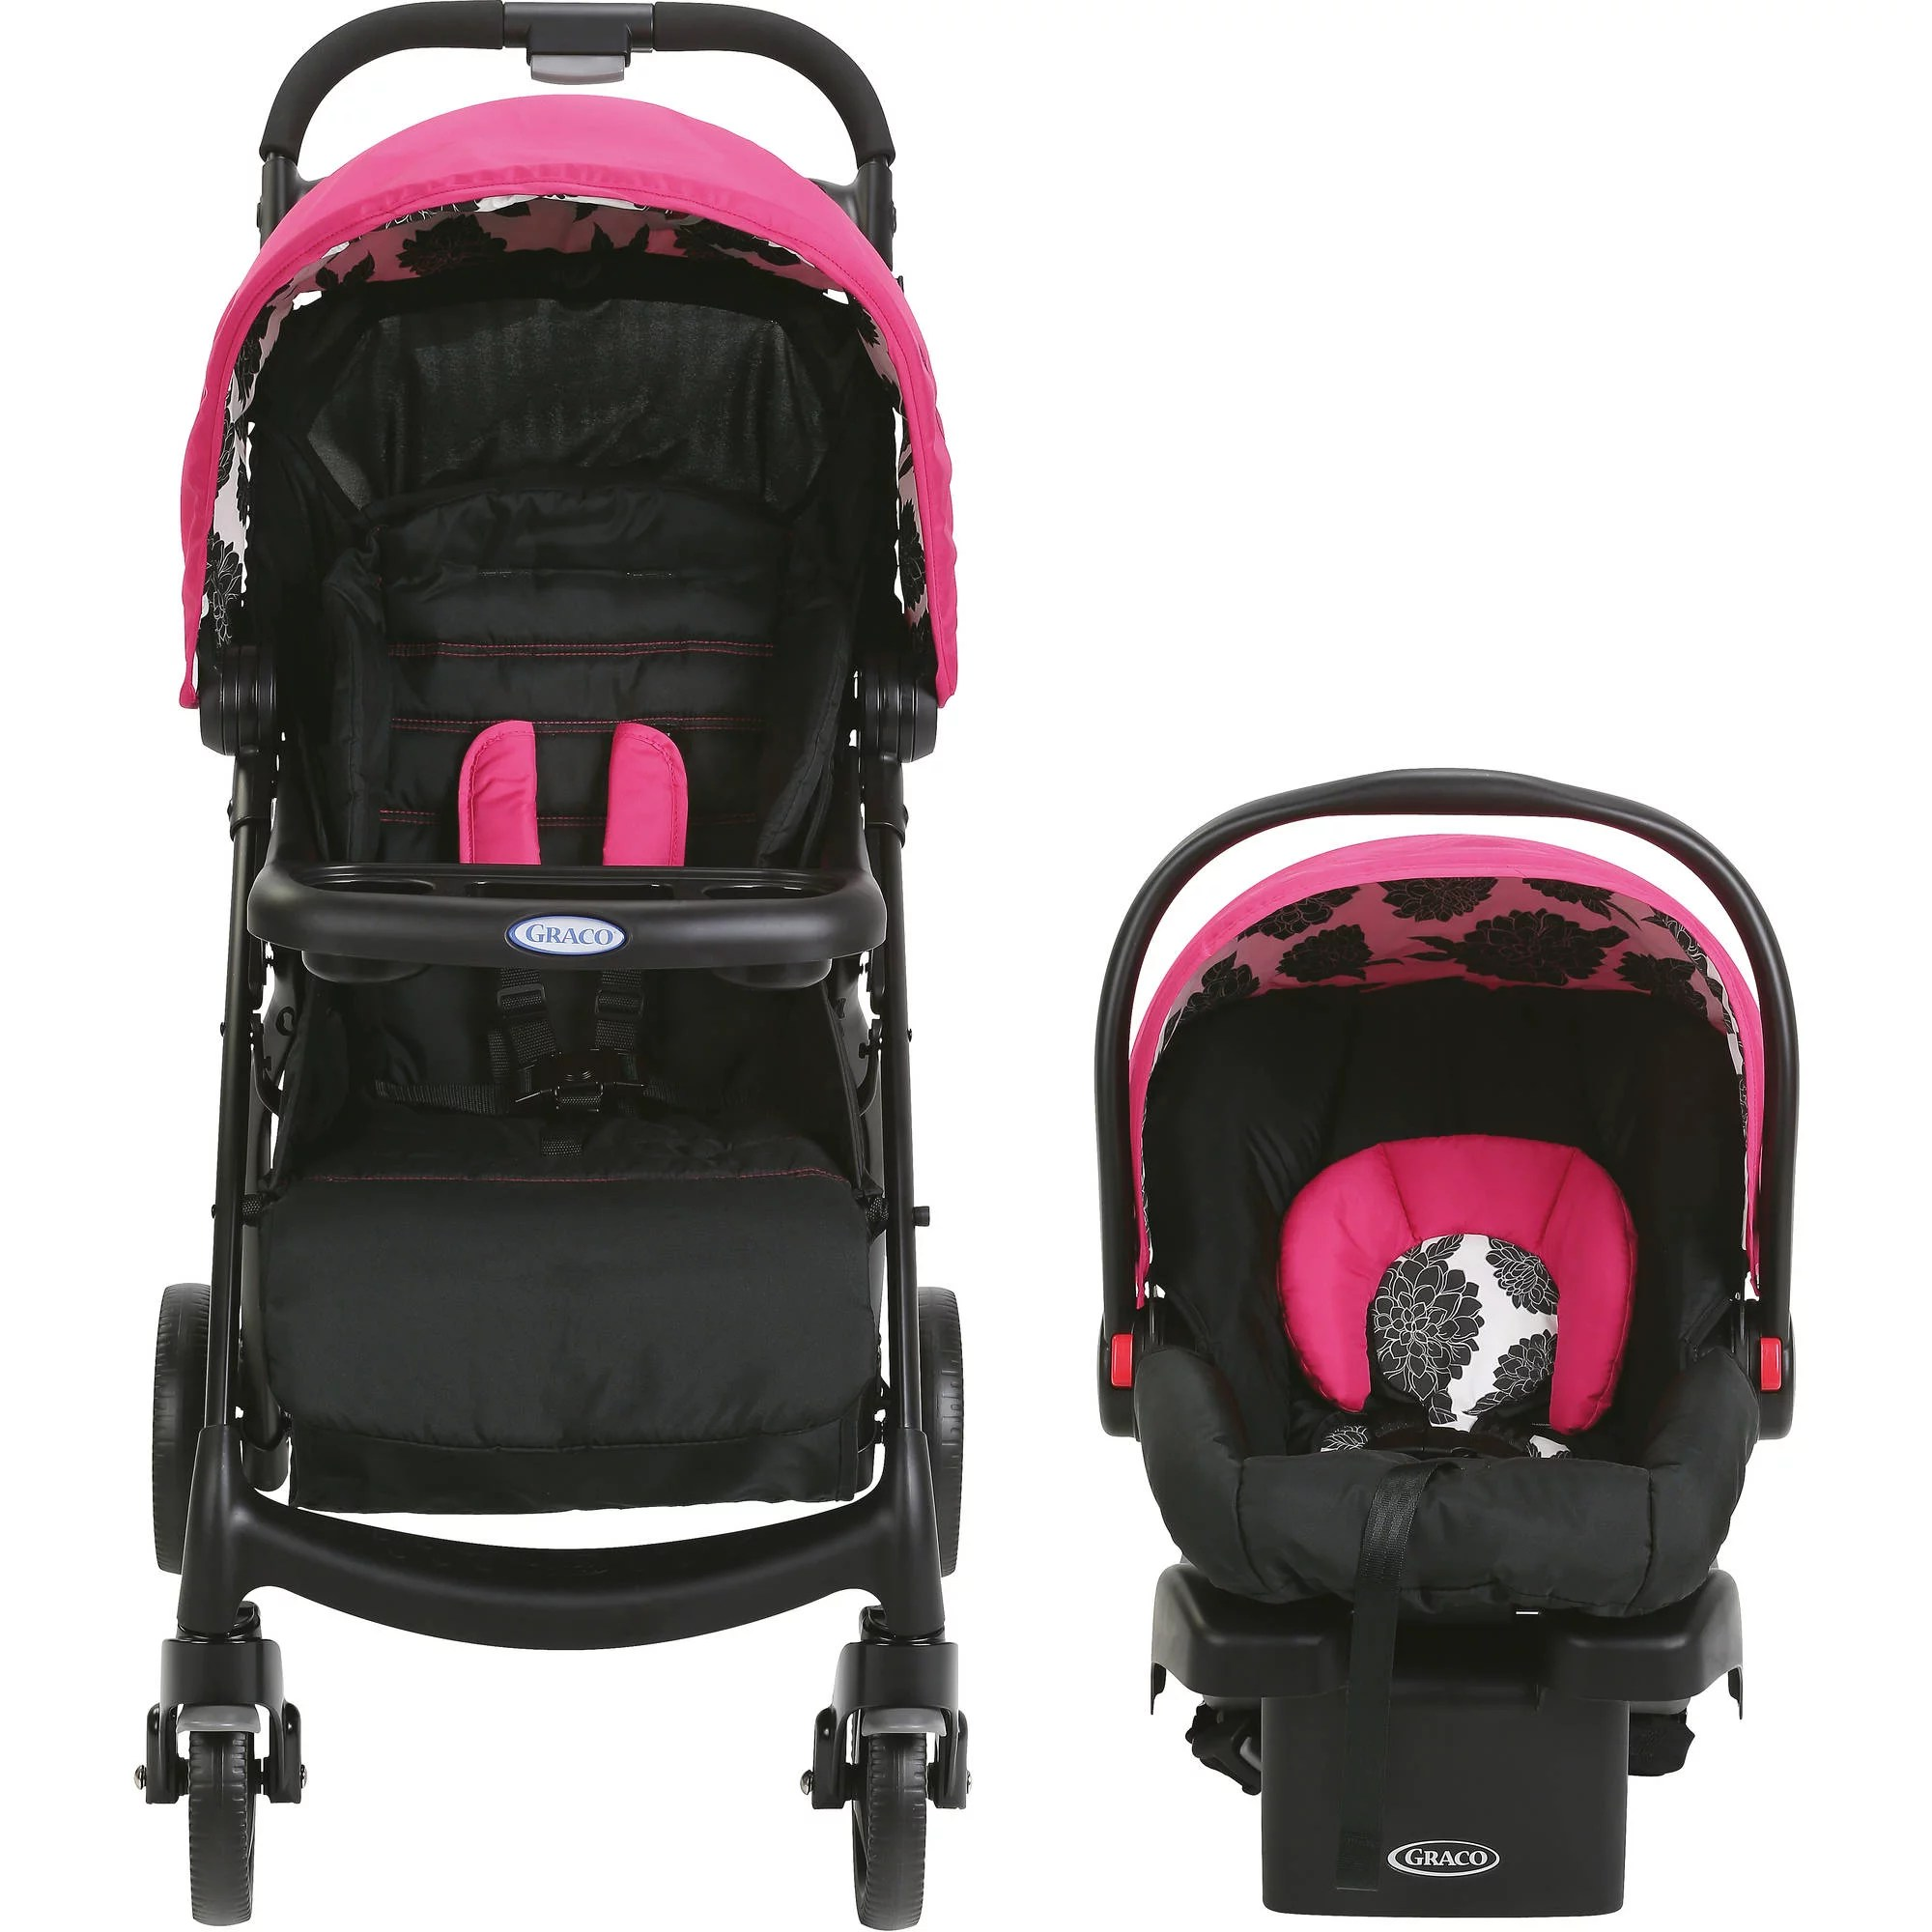 Car Seat Carrier Stroller Details About Stroller Infant Car Seat Baby Carrier Safety Outdoor Travel System New Born Pink